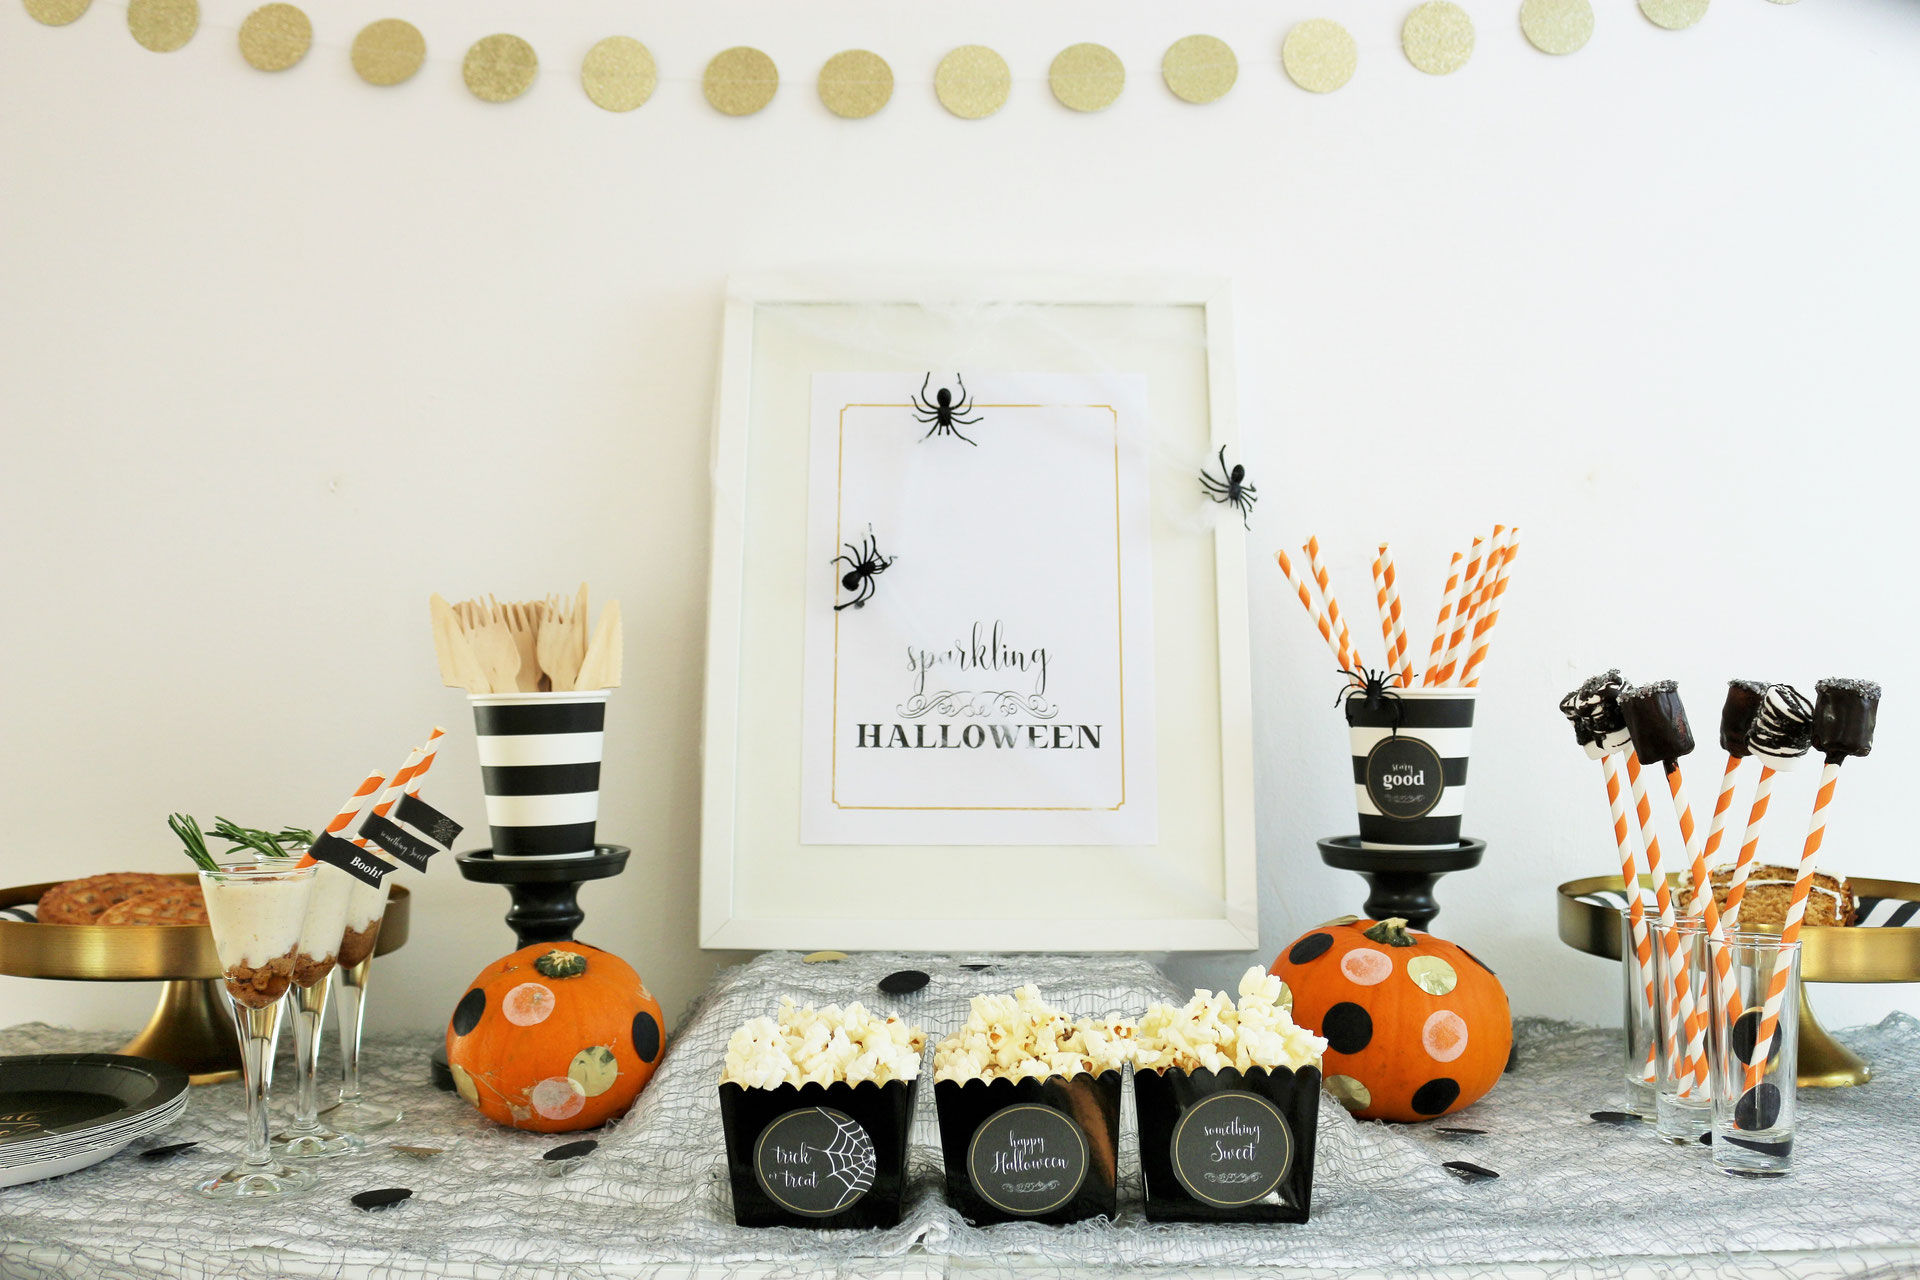 halloween deko ideen klassisch in schwarz wei orange und gold partystories blog. Black Bedroom Furniture Sets. Home Design Ideas